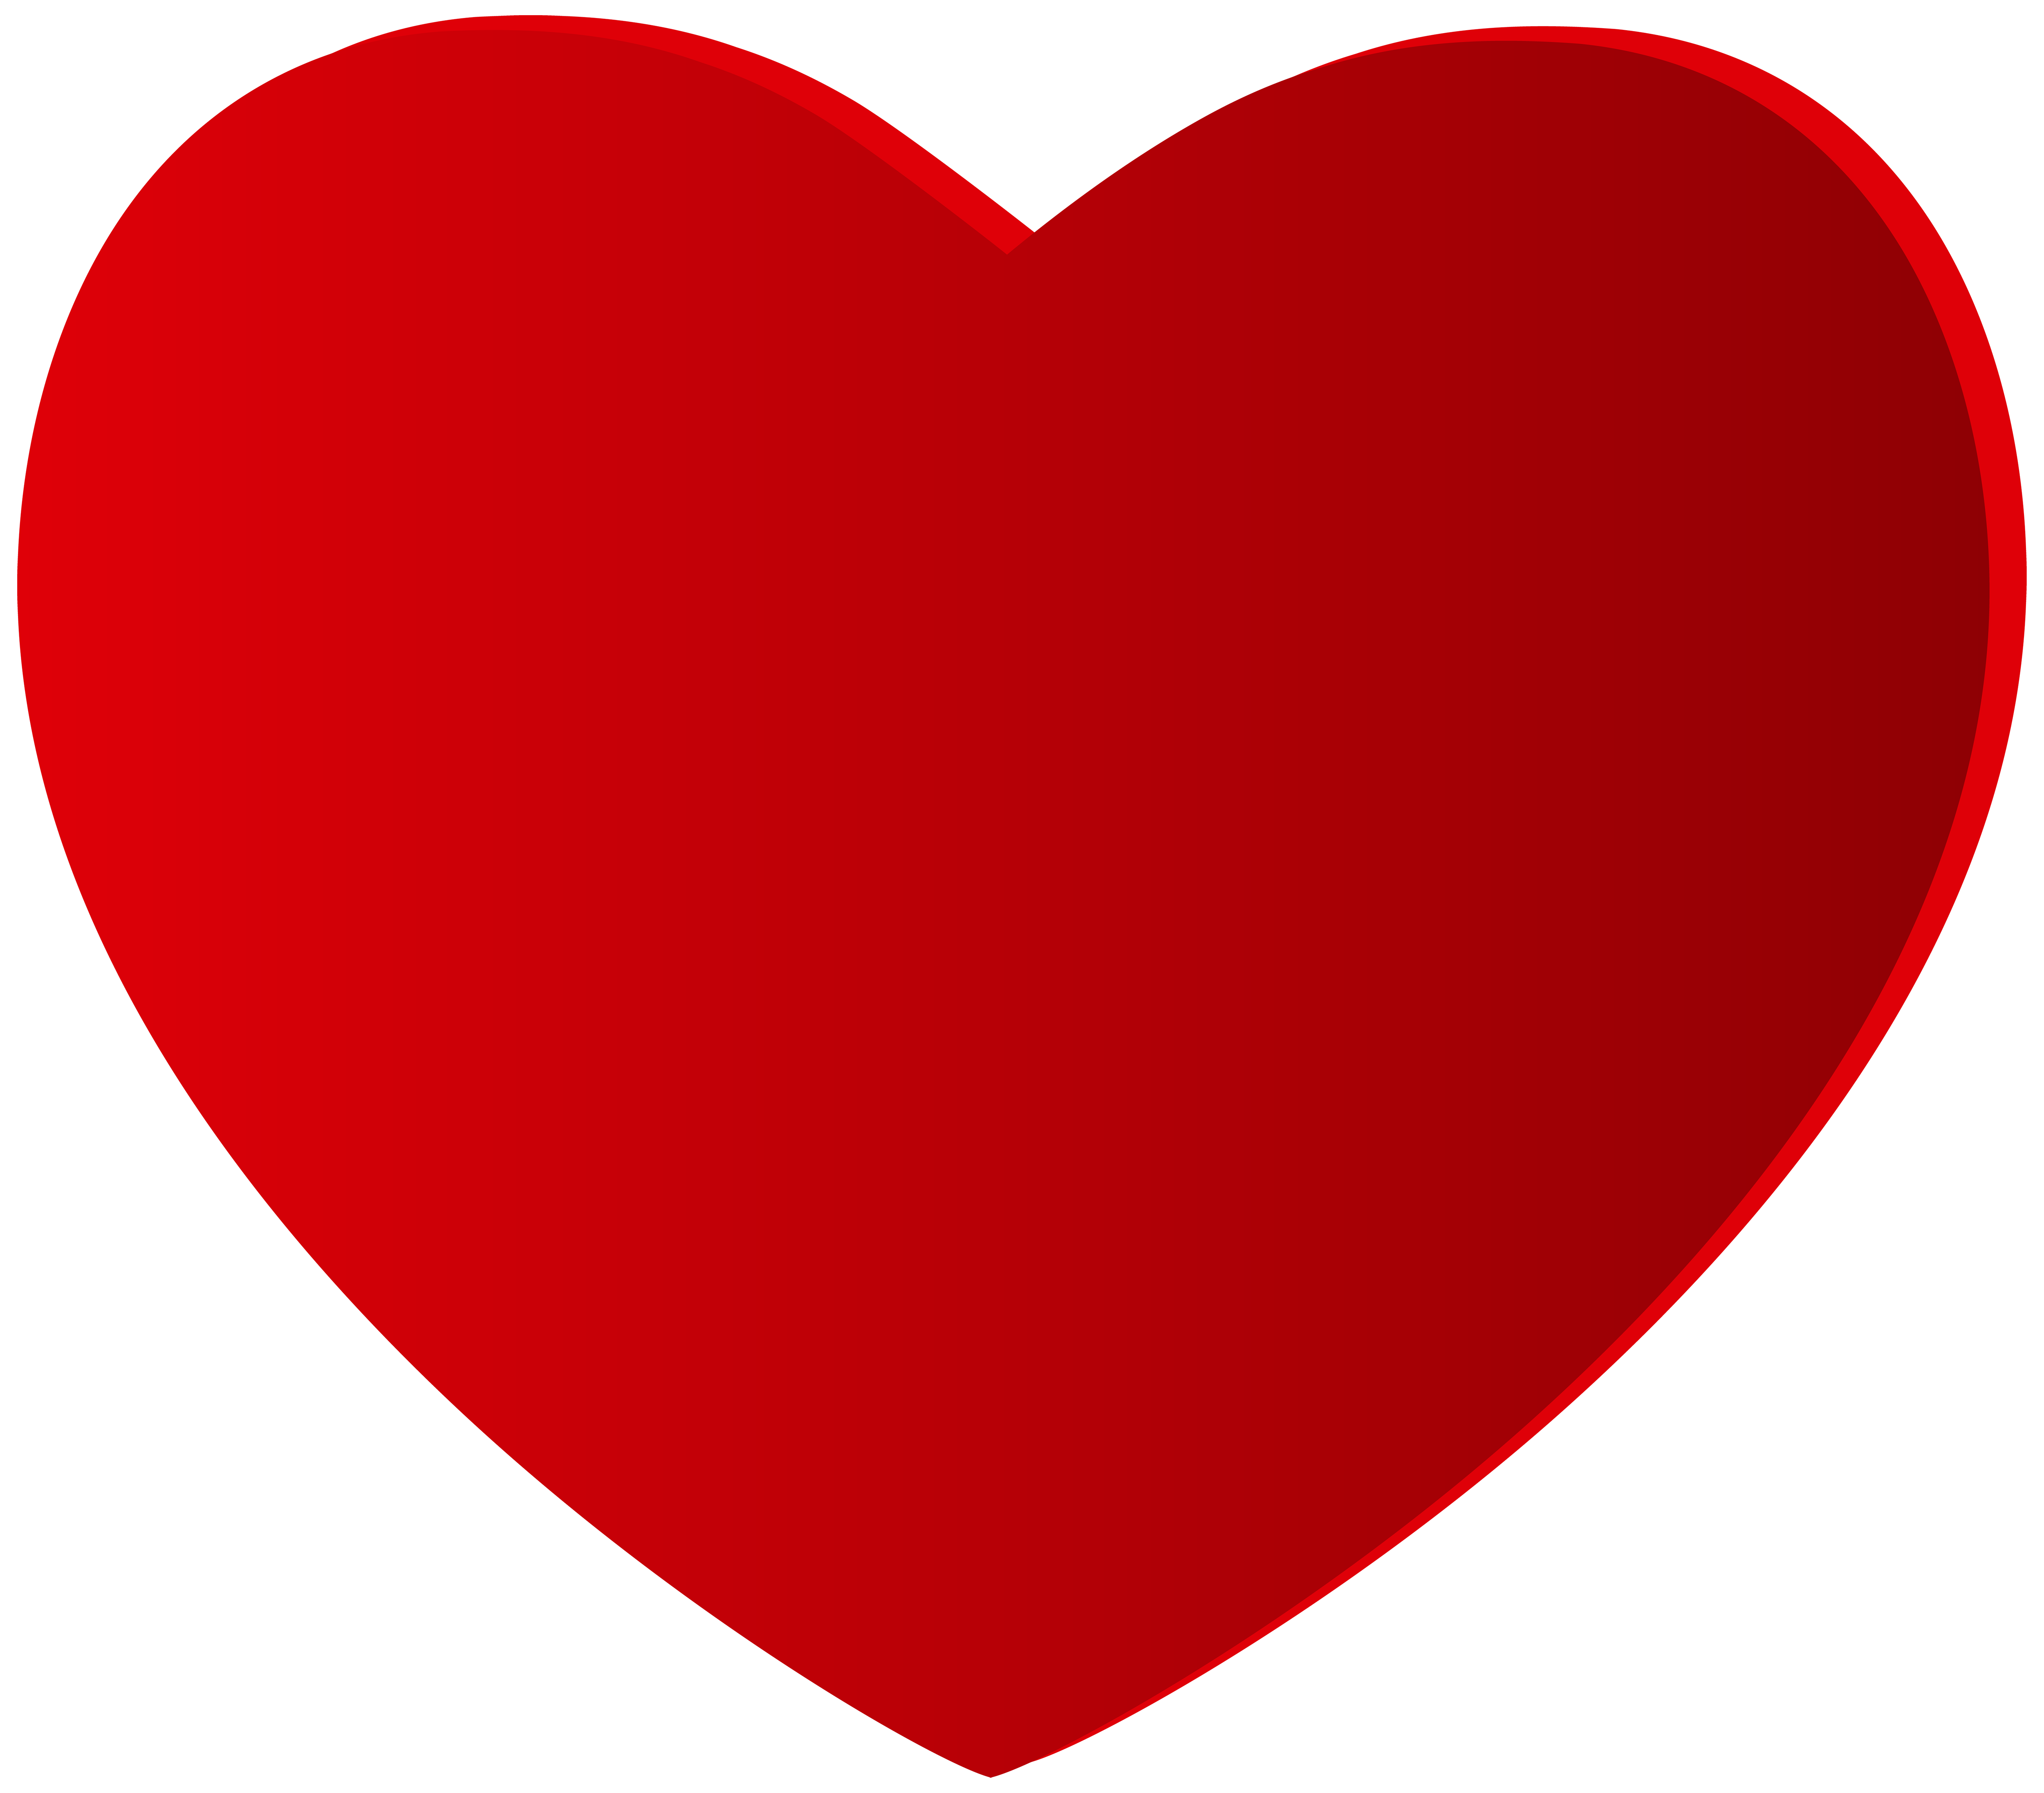 large heart best clipart #8092